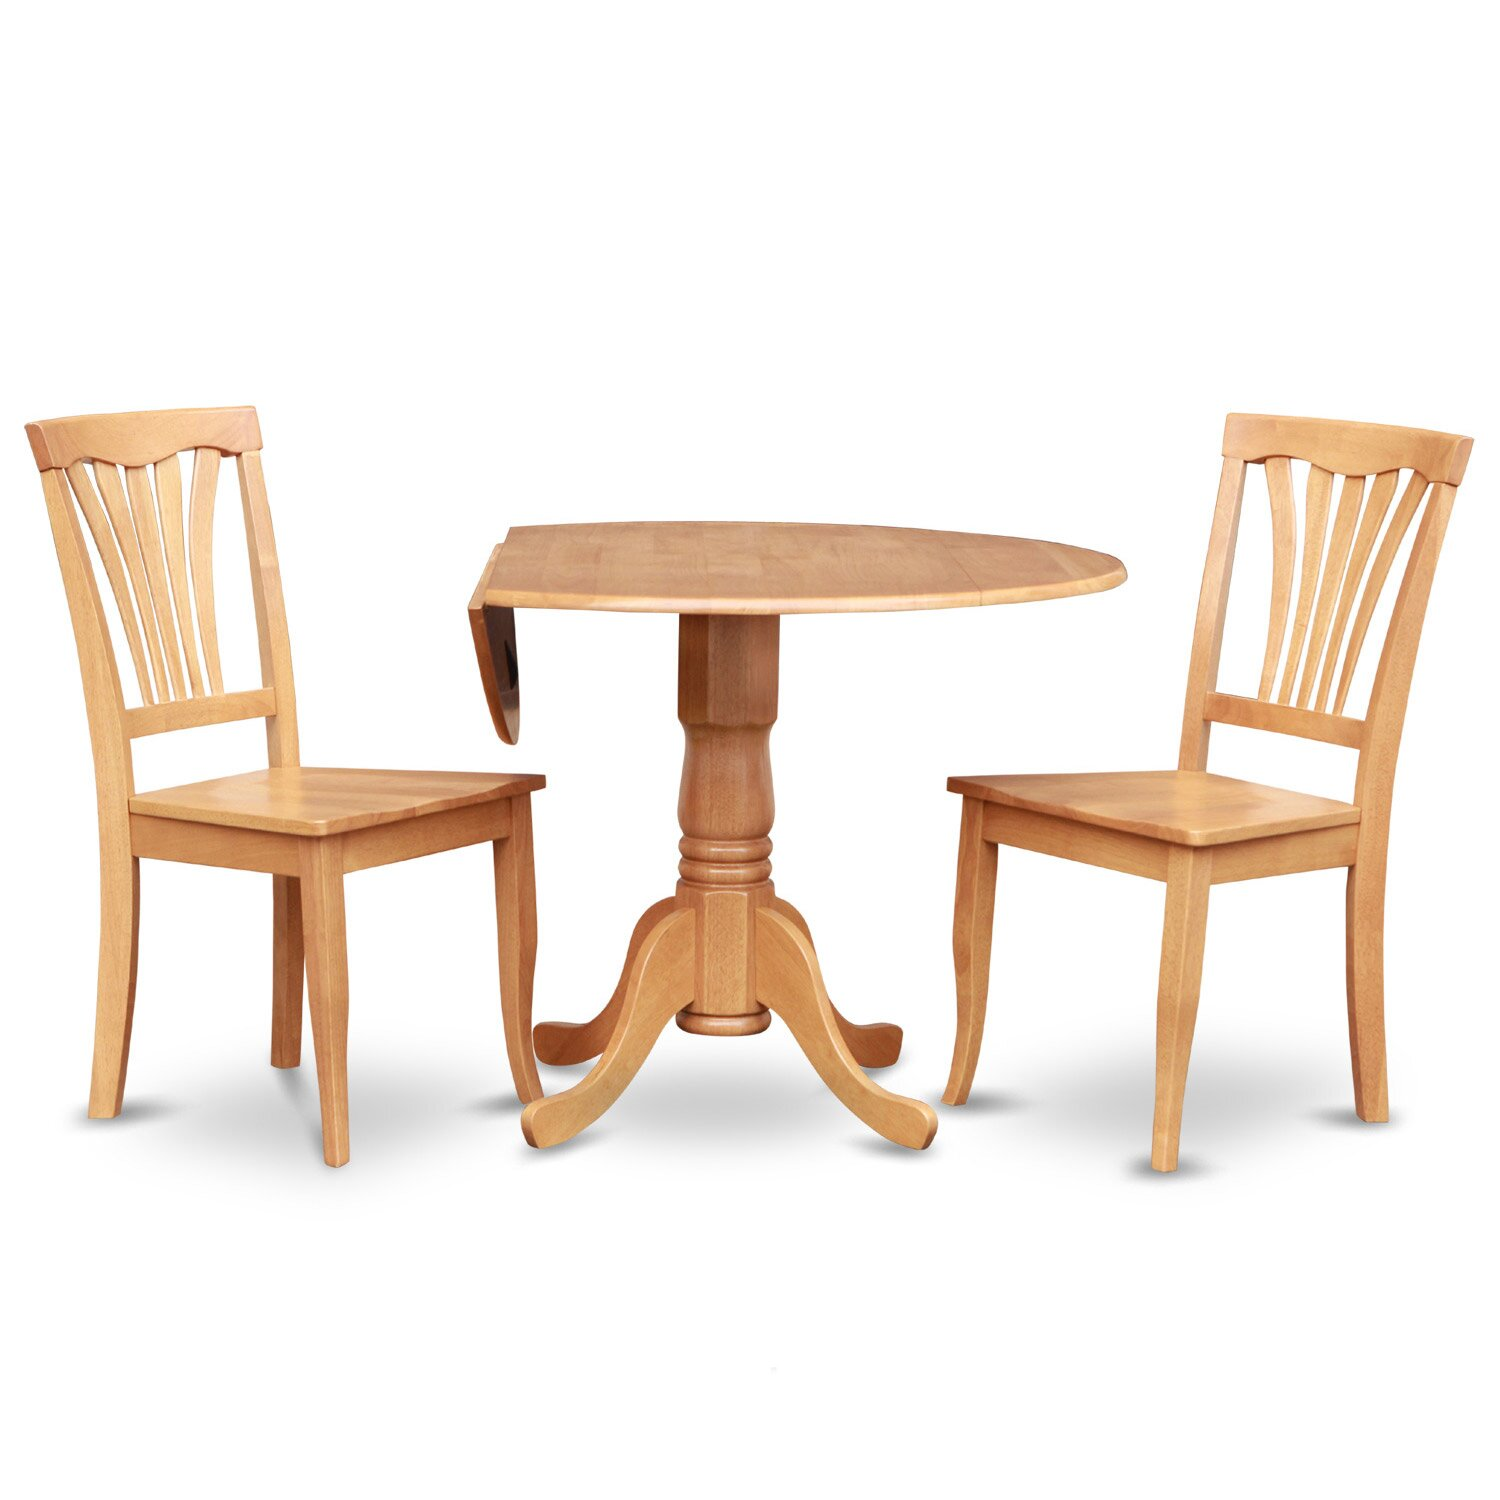 Timeless classic kitchen tables and chairs configurations for Small kitchen table and chairs